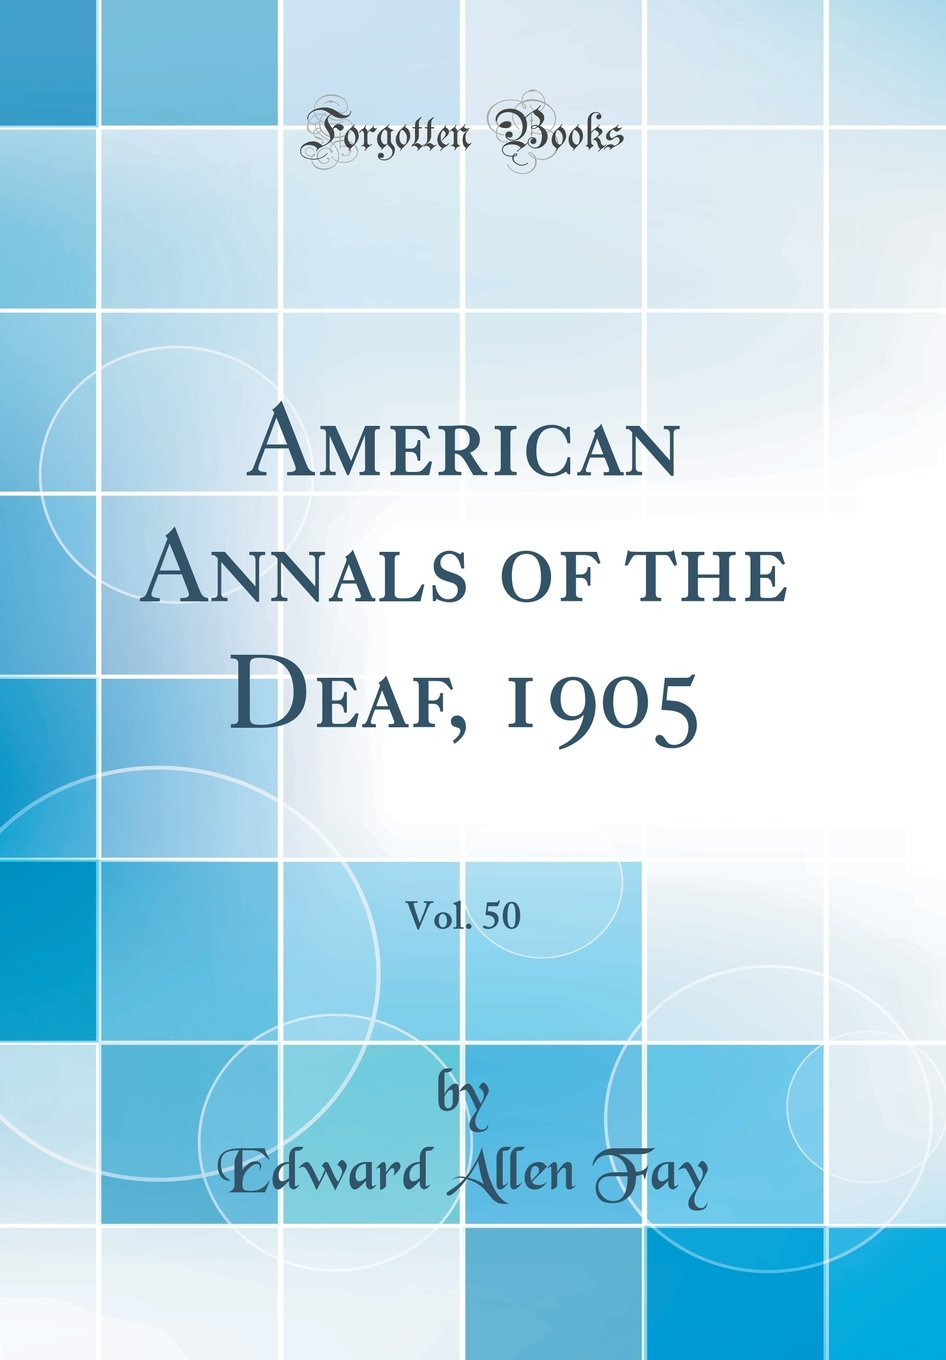 American Annals of the Deaf, 1905, Vol. 50 (Classic Reprint) ebook